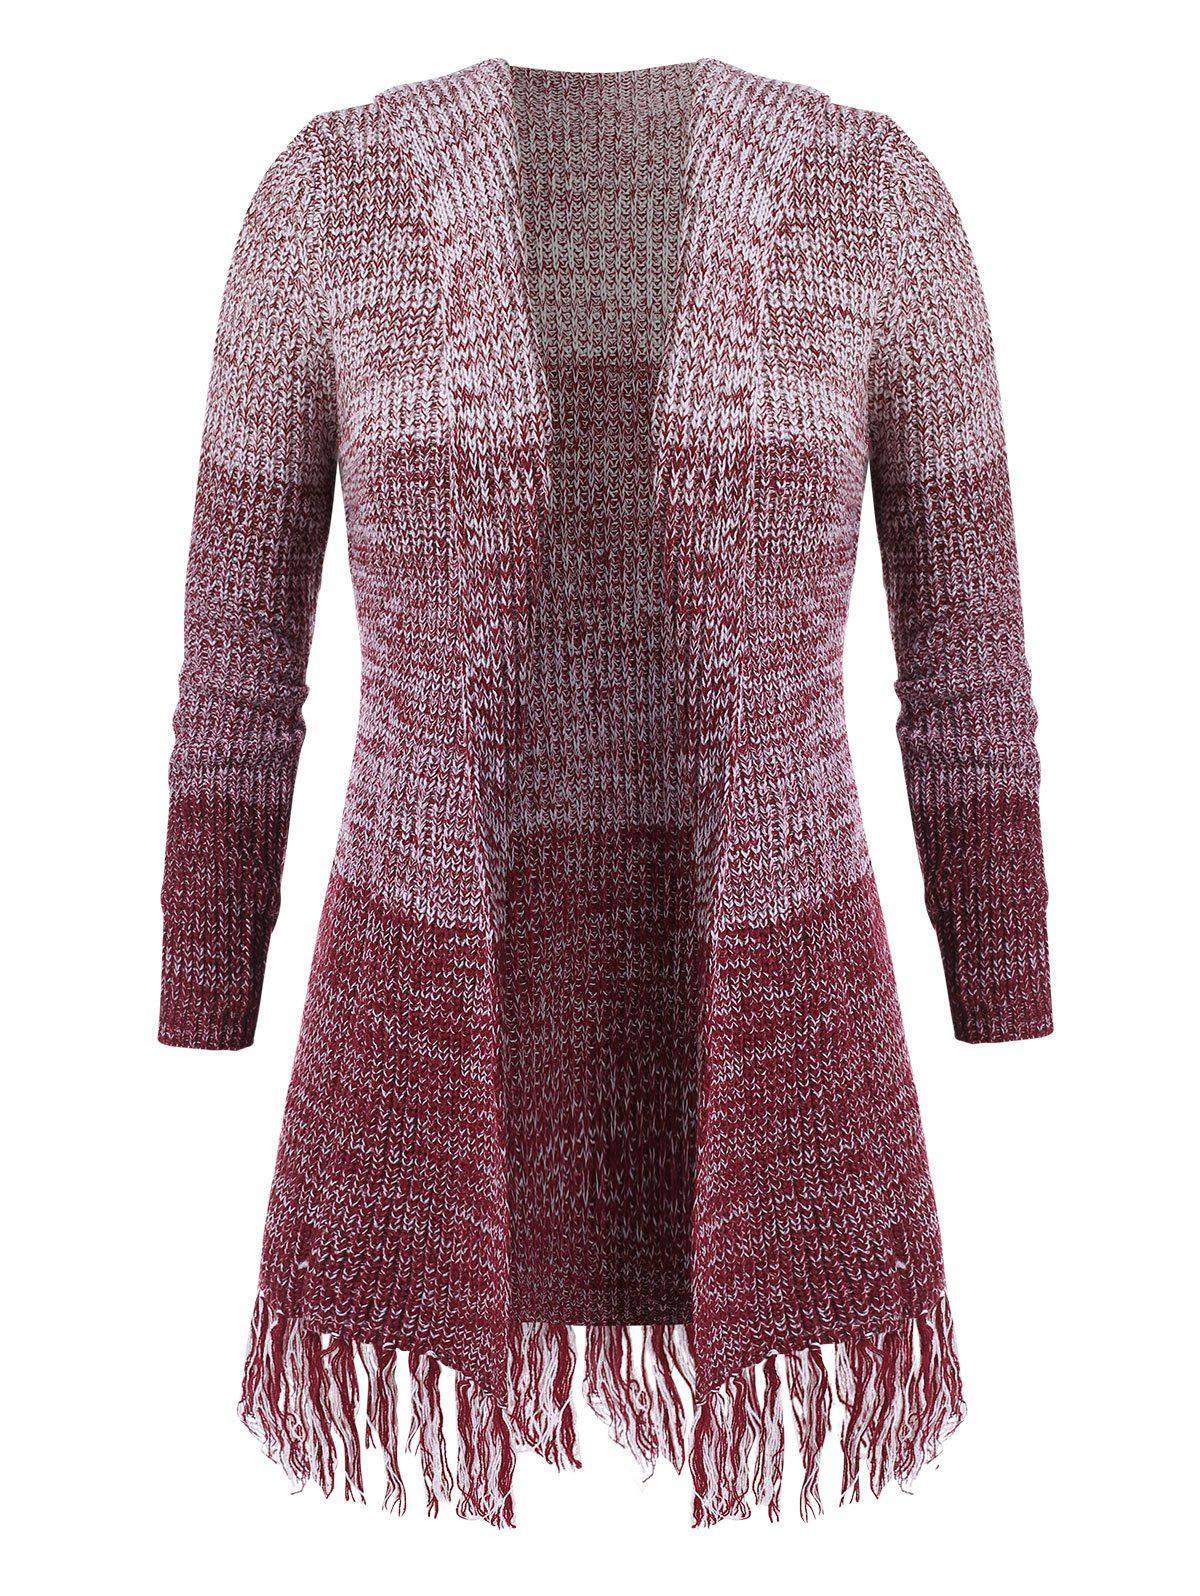 Plus Size Open Front Fringed Cardigan - DEEP RED L